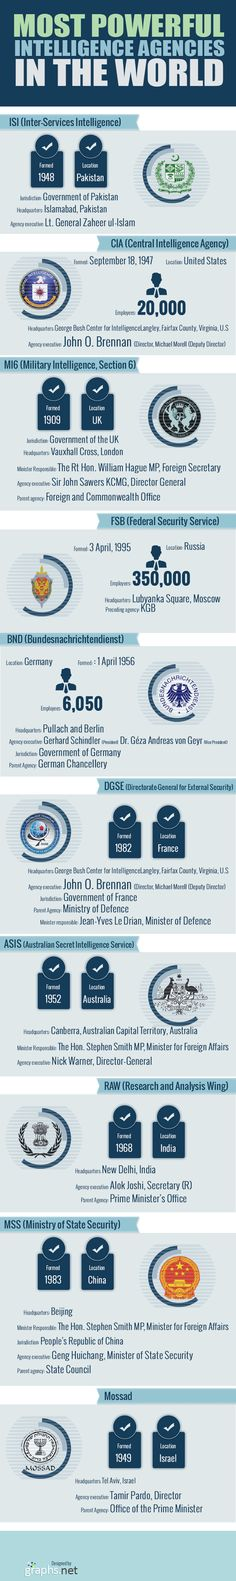 Most Powerful Intelligence Agencies In The World #Infographic